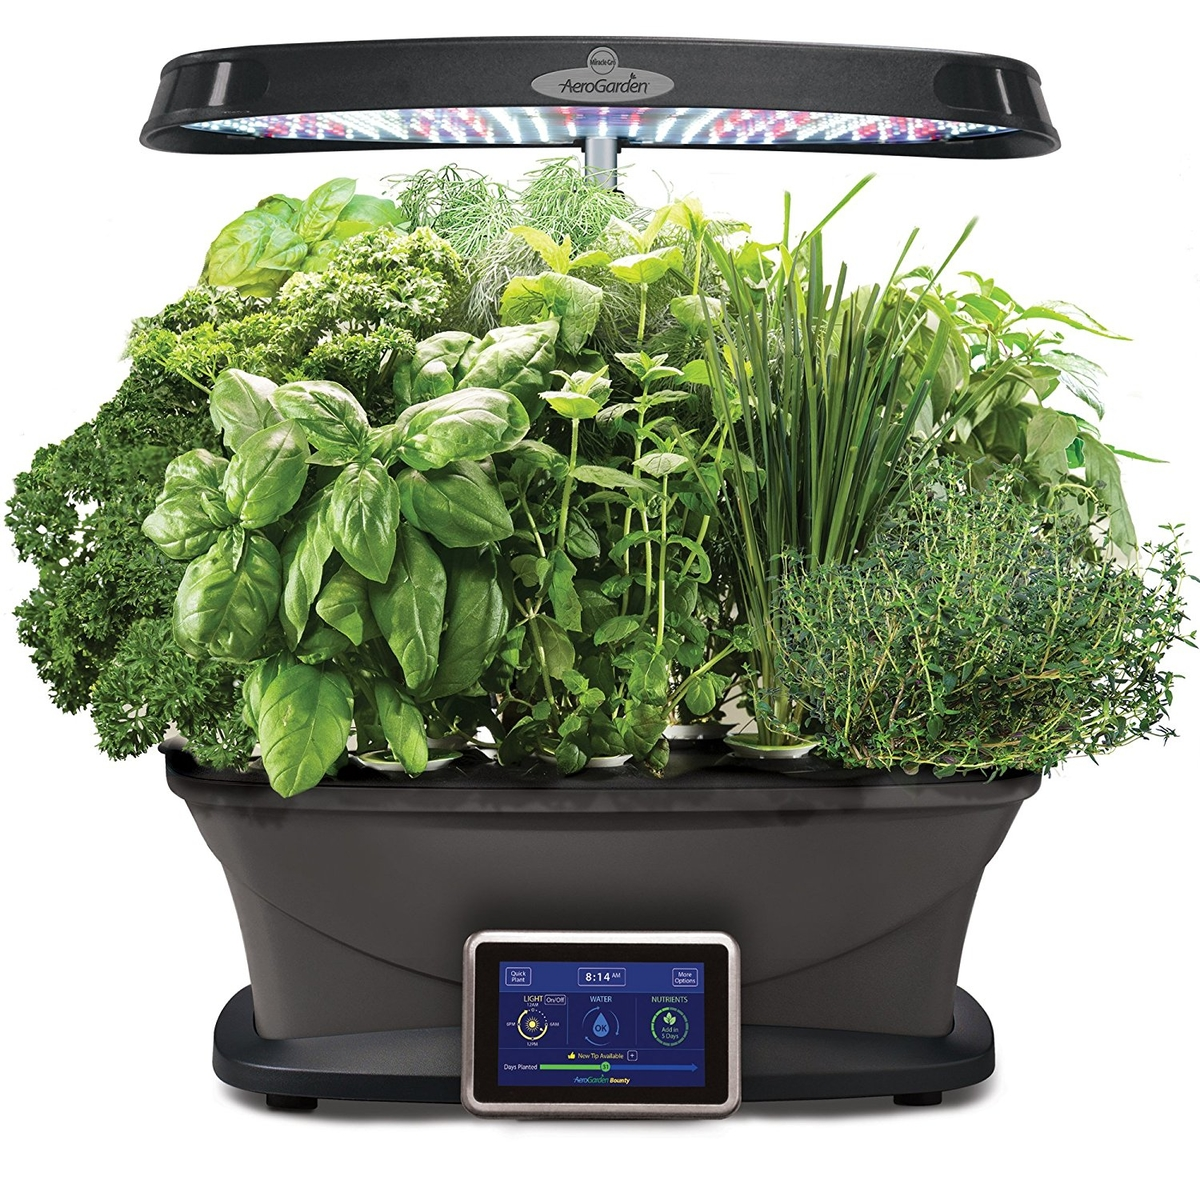 Grow Fresh Herbs, Veggies, Salad Greens, Flowers And More In This Soil Free  Indoor Gardening System. It Has A Full Spectrum 45 Watt LED Lighting ...